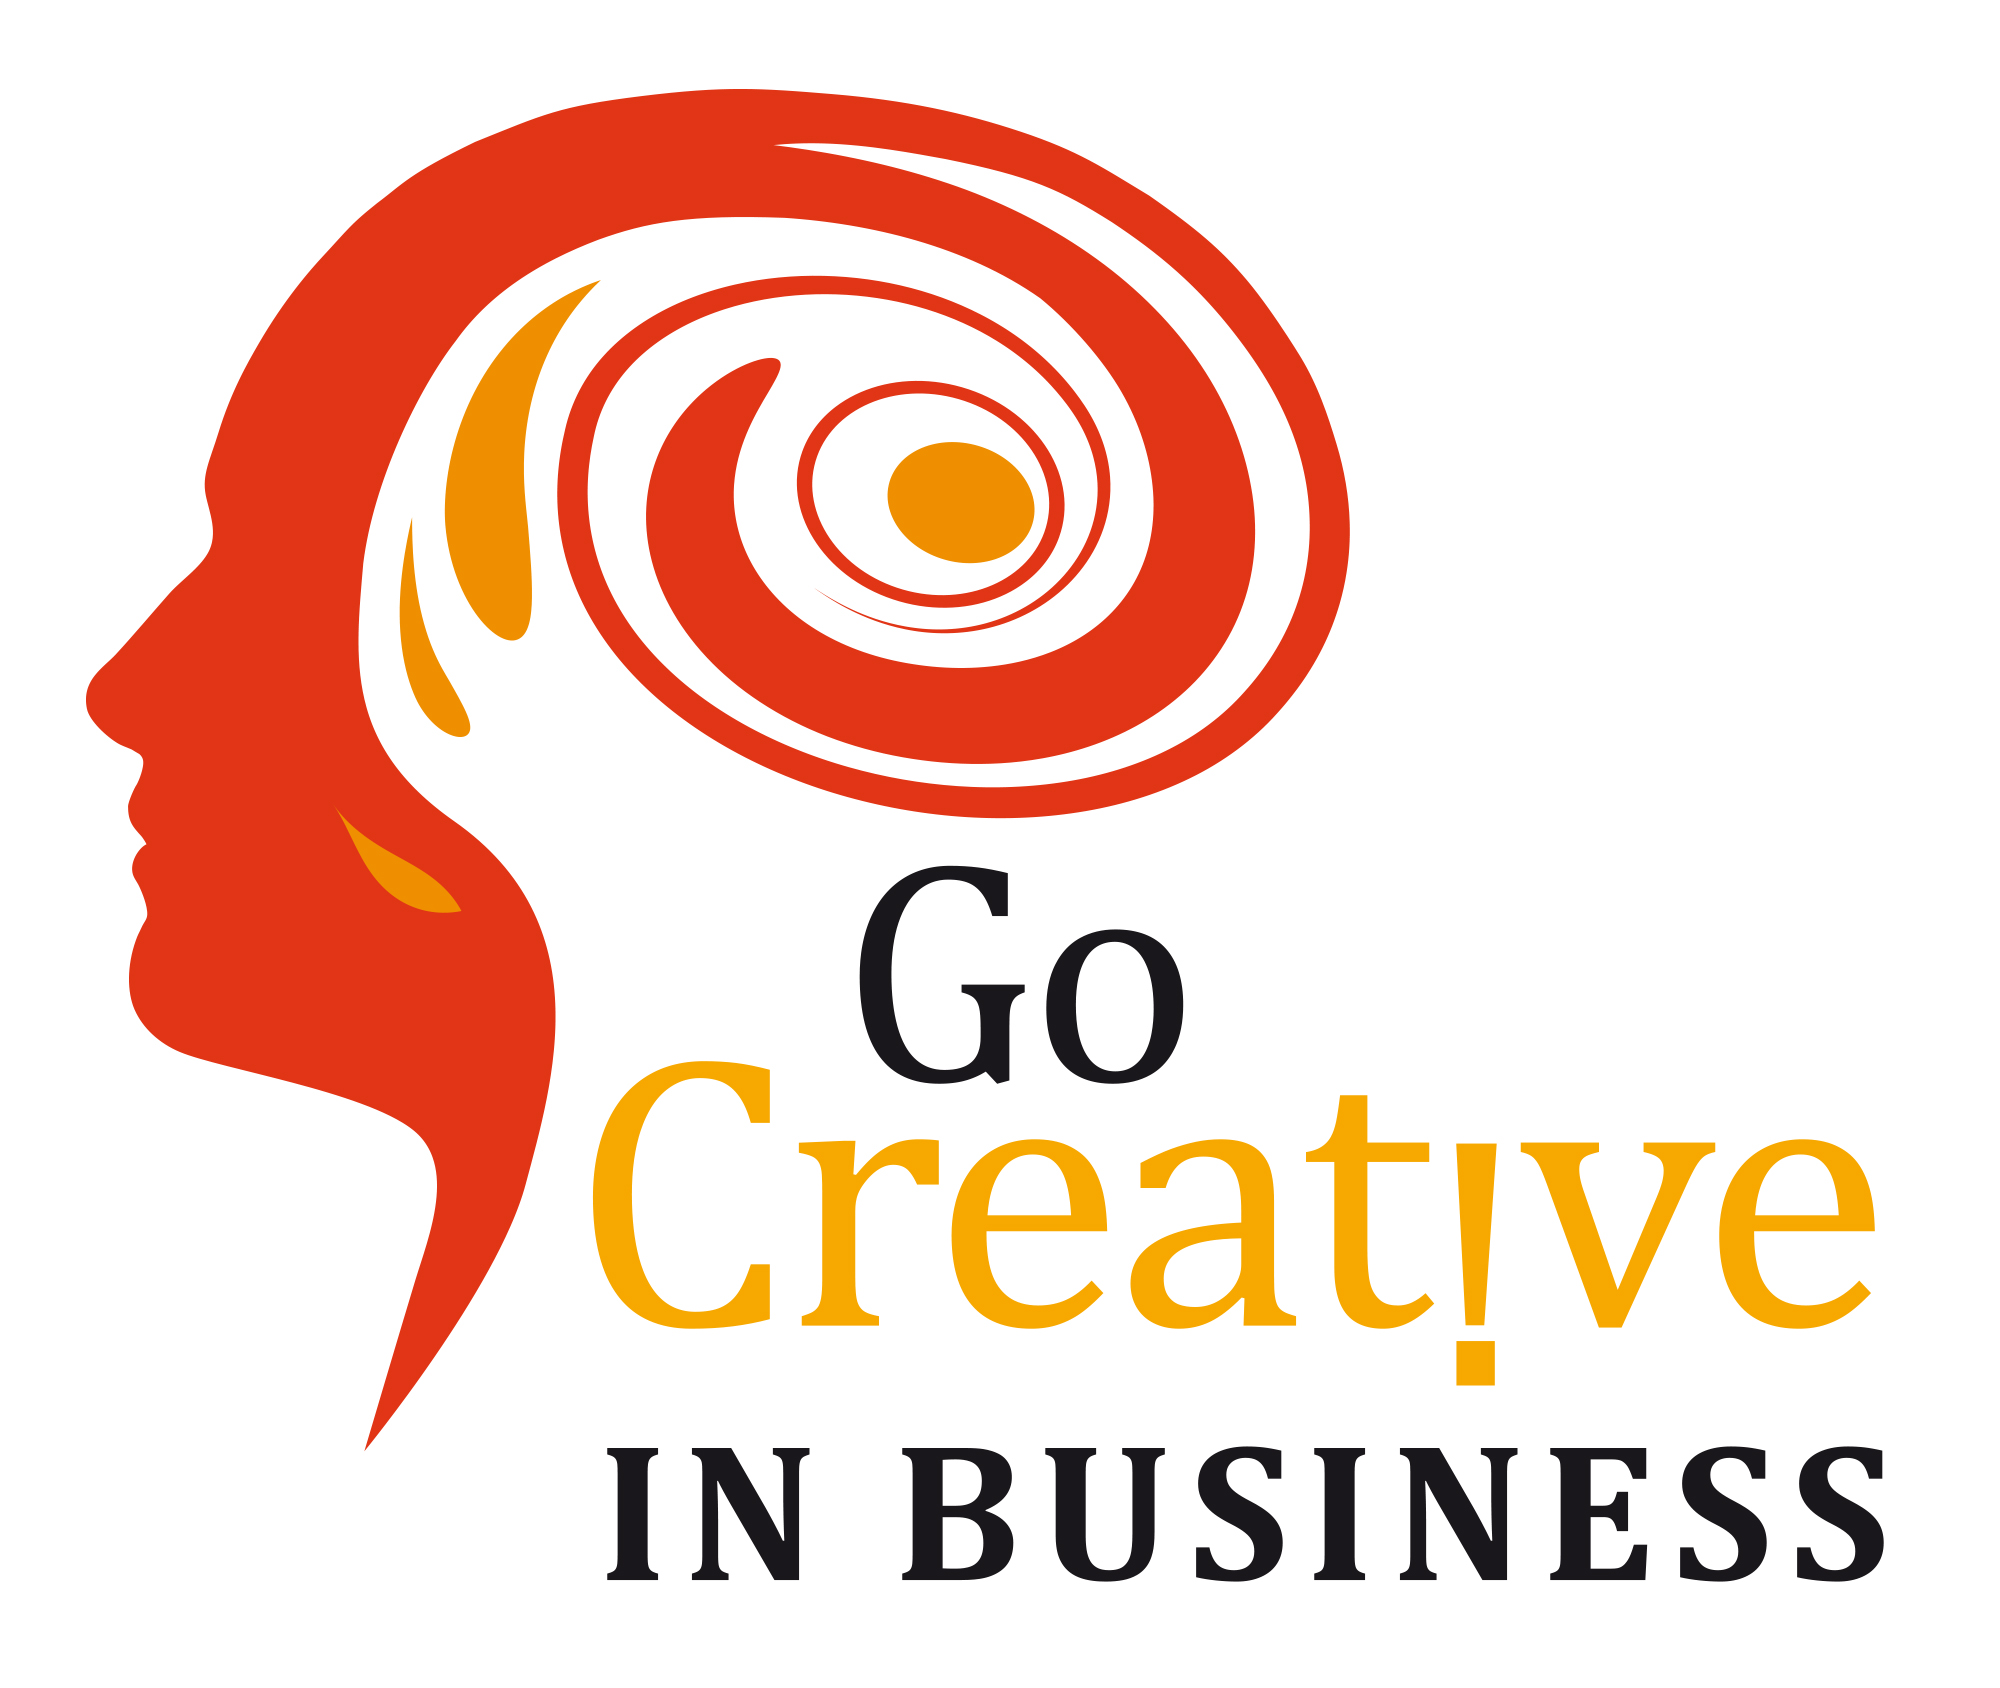 Go creative in business logo